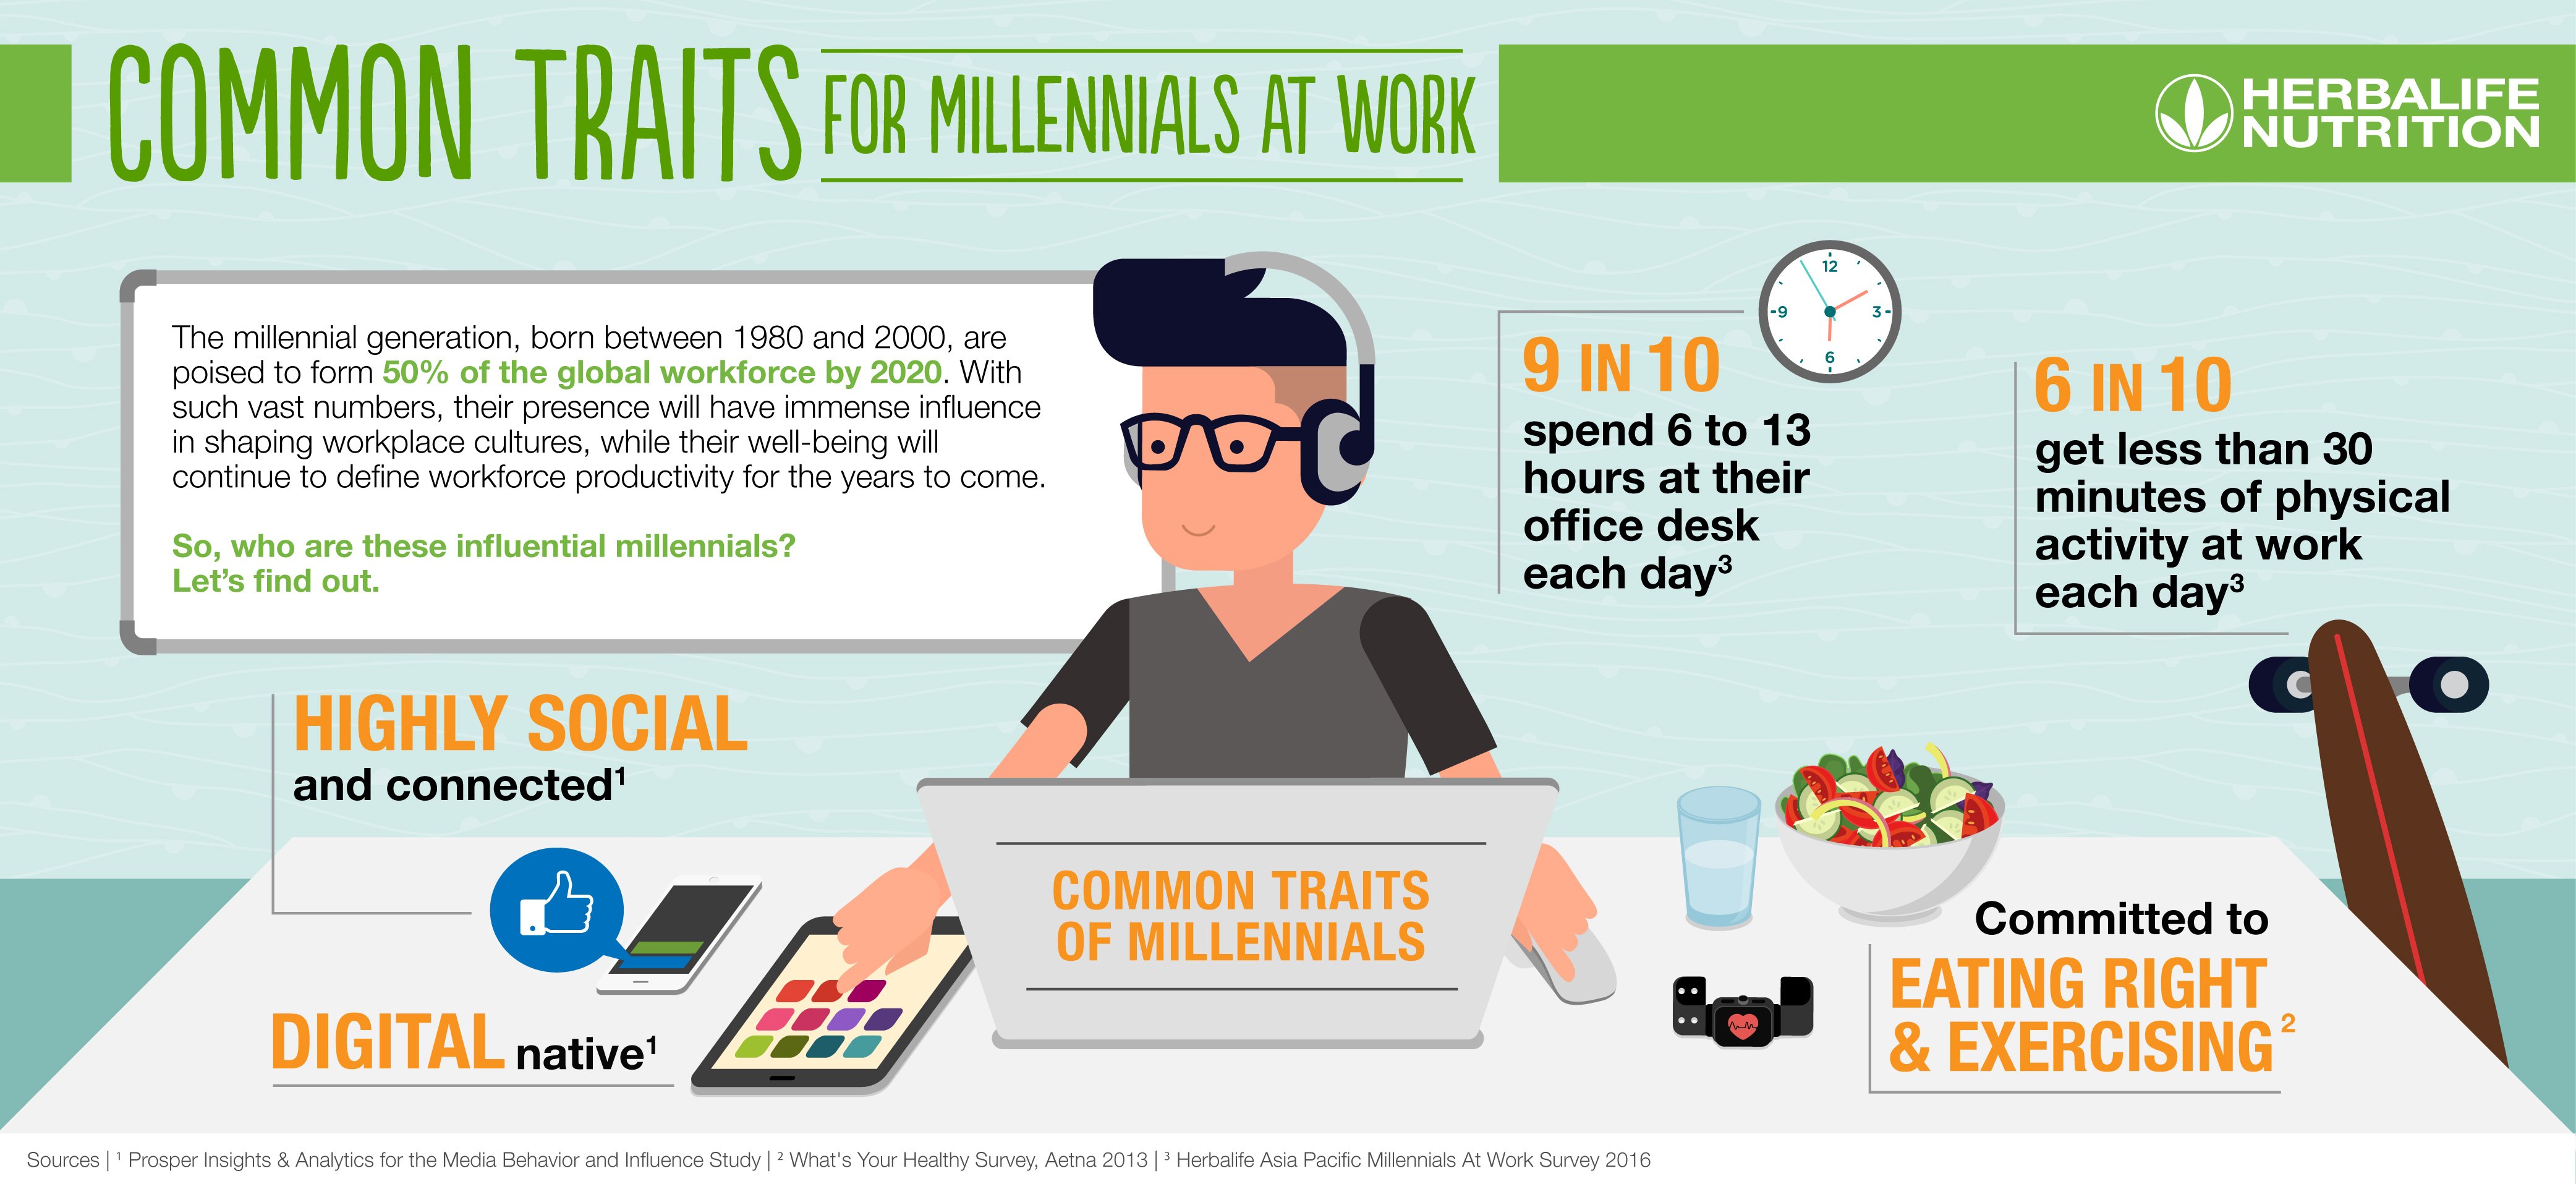 ph-millennials-at-work-01